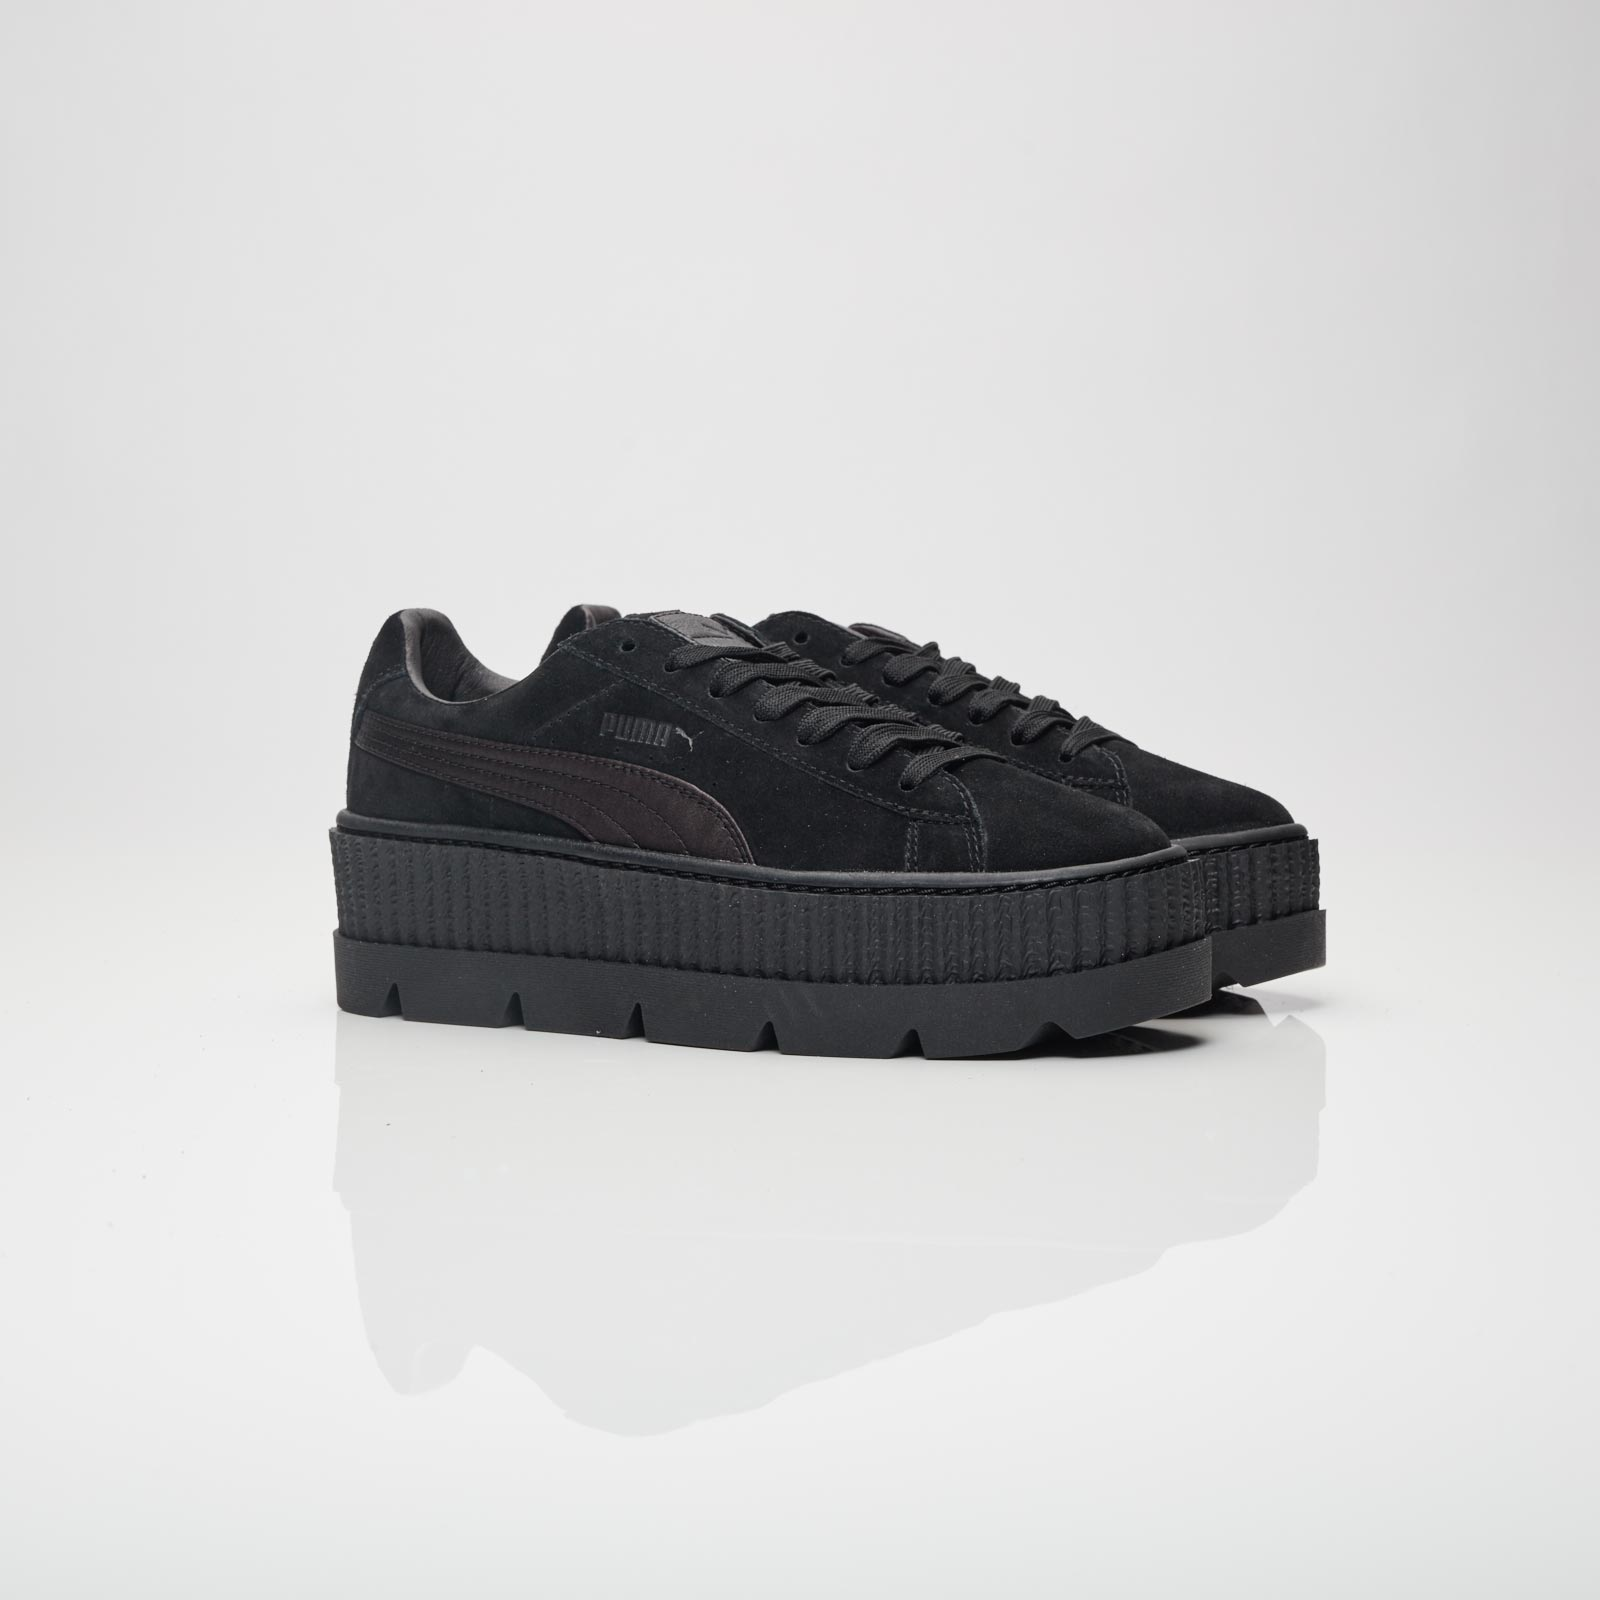 f332ad3dadc Puma Cleated Creeper Suede Wns - 366268-04 - Sneakersnstuff ...